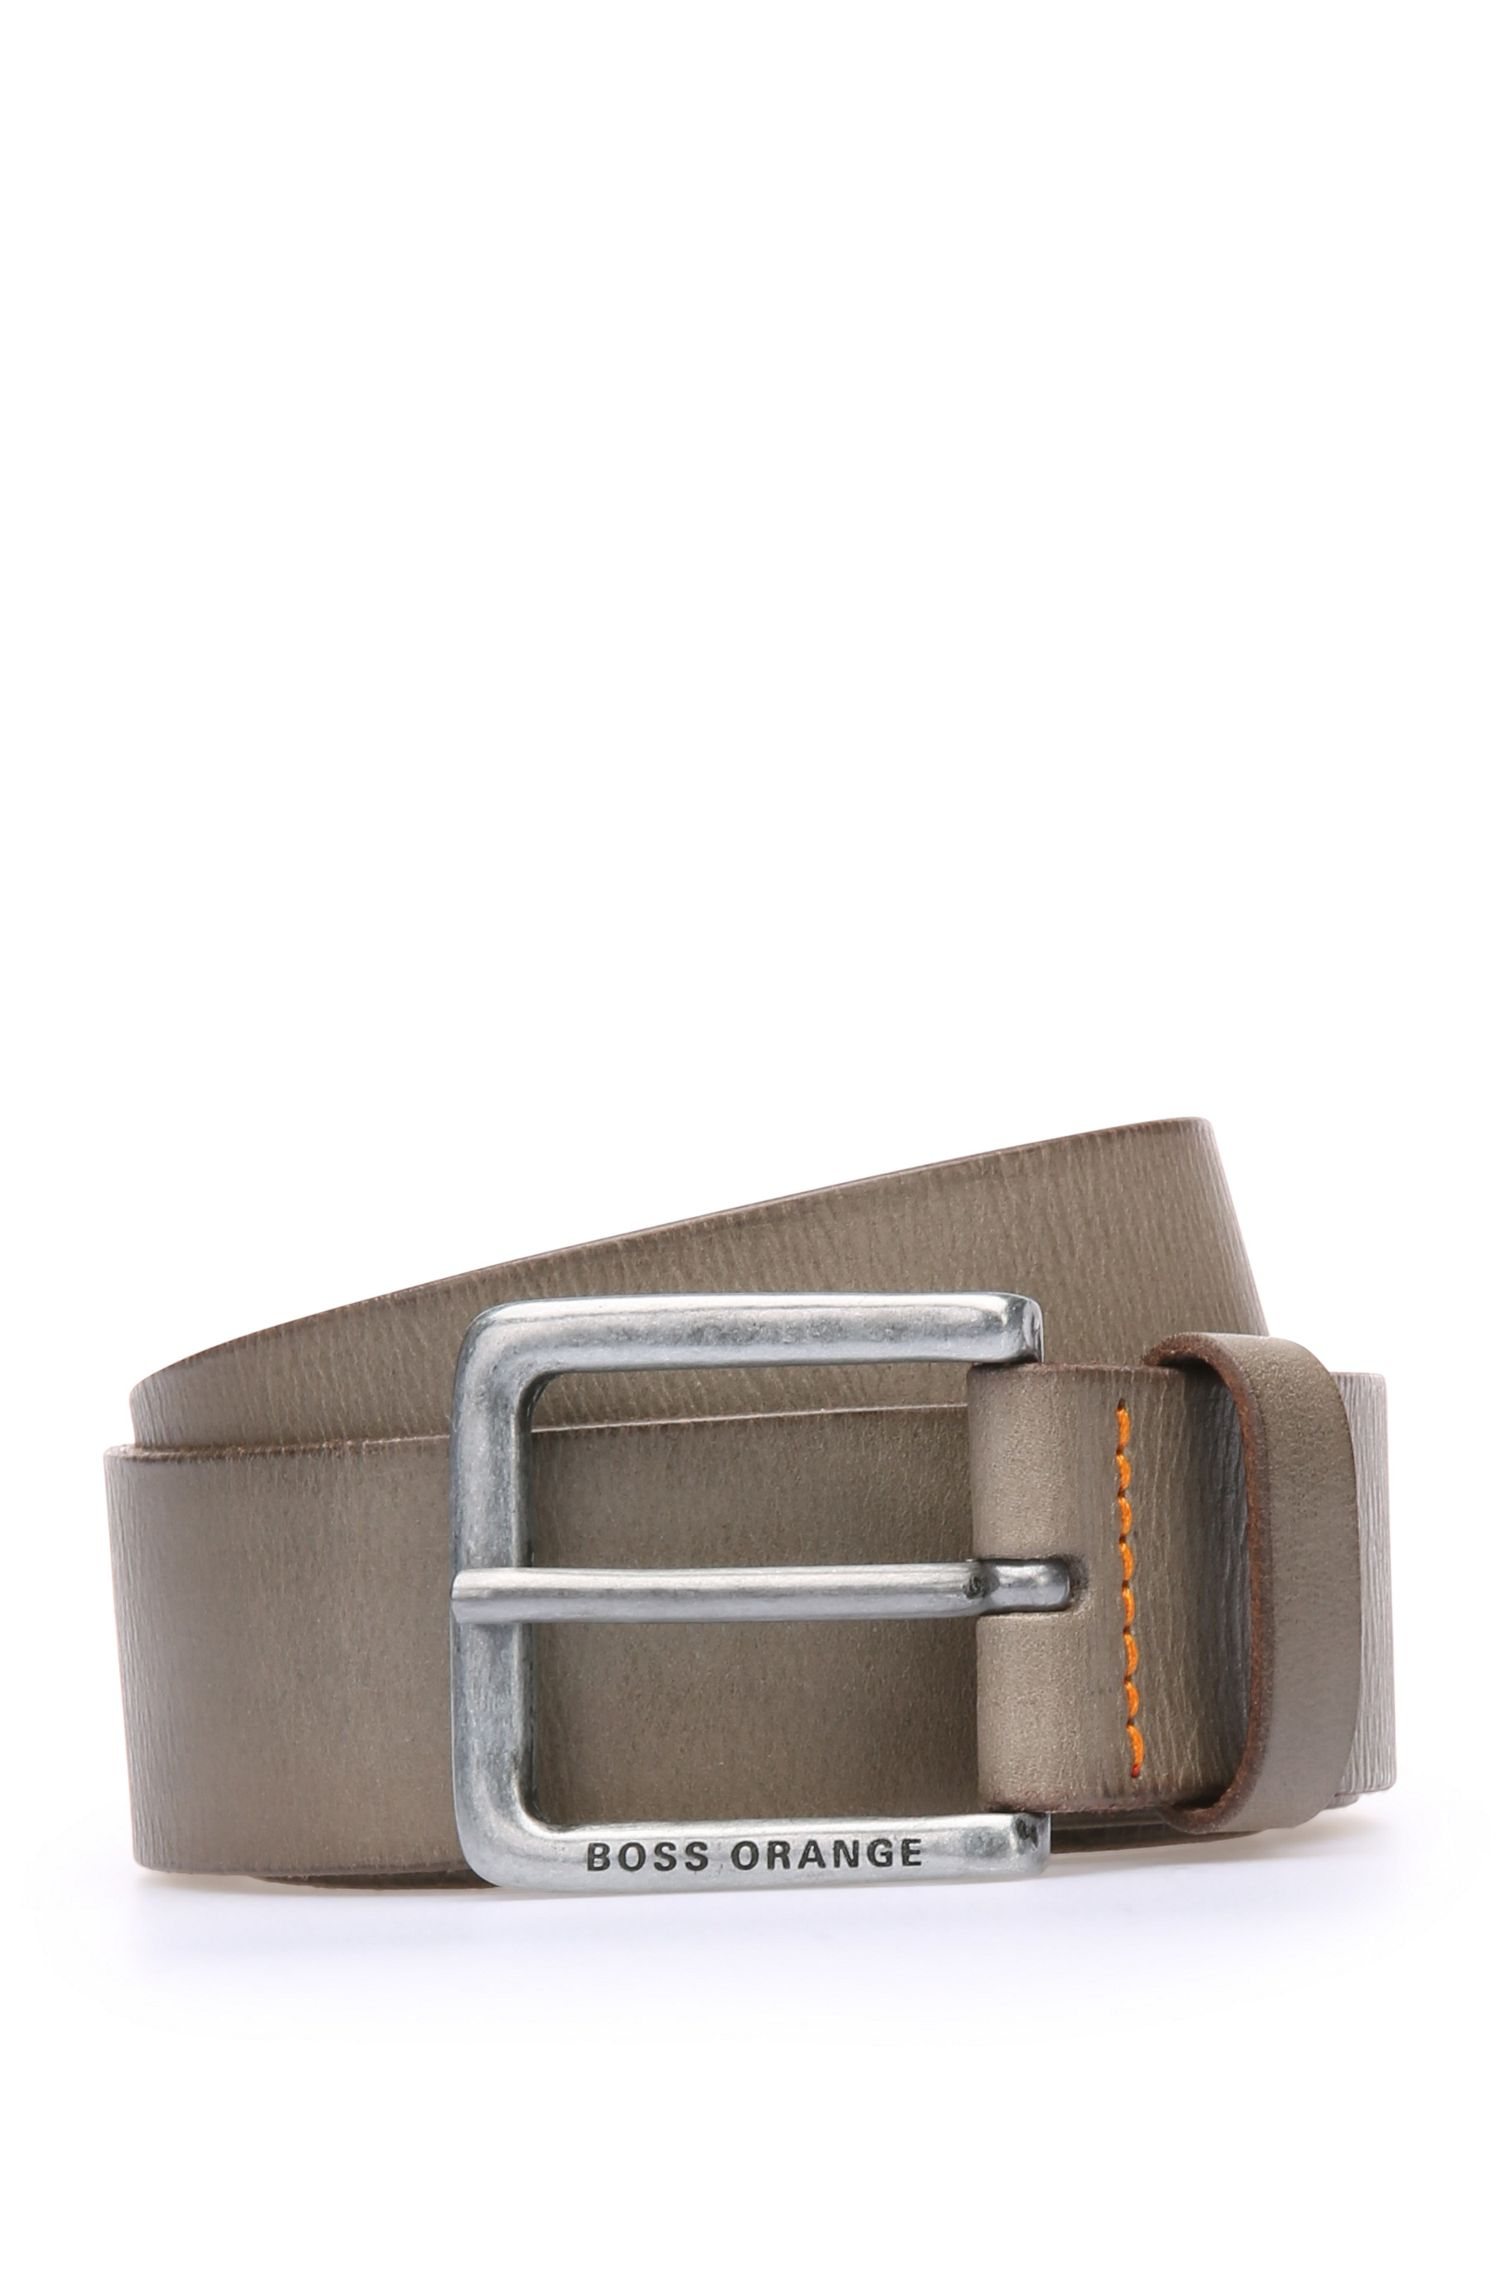 Leather belt with washed effect by BOSS Orange